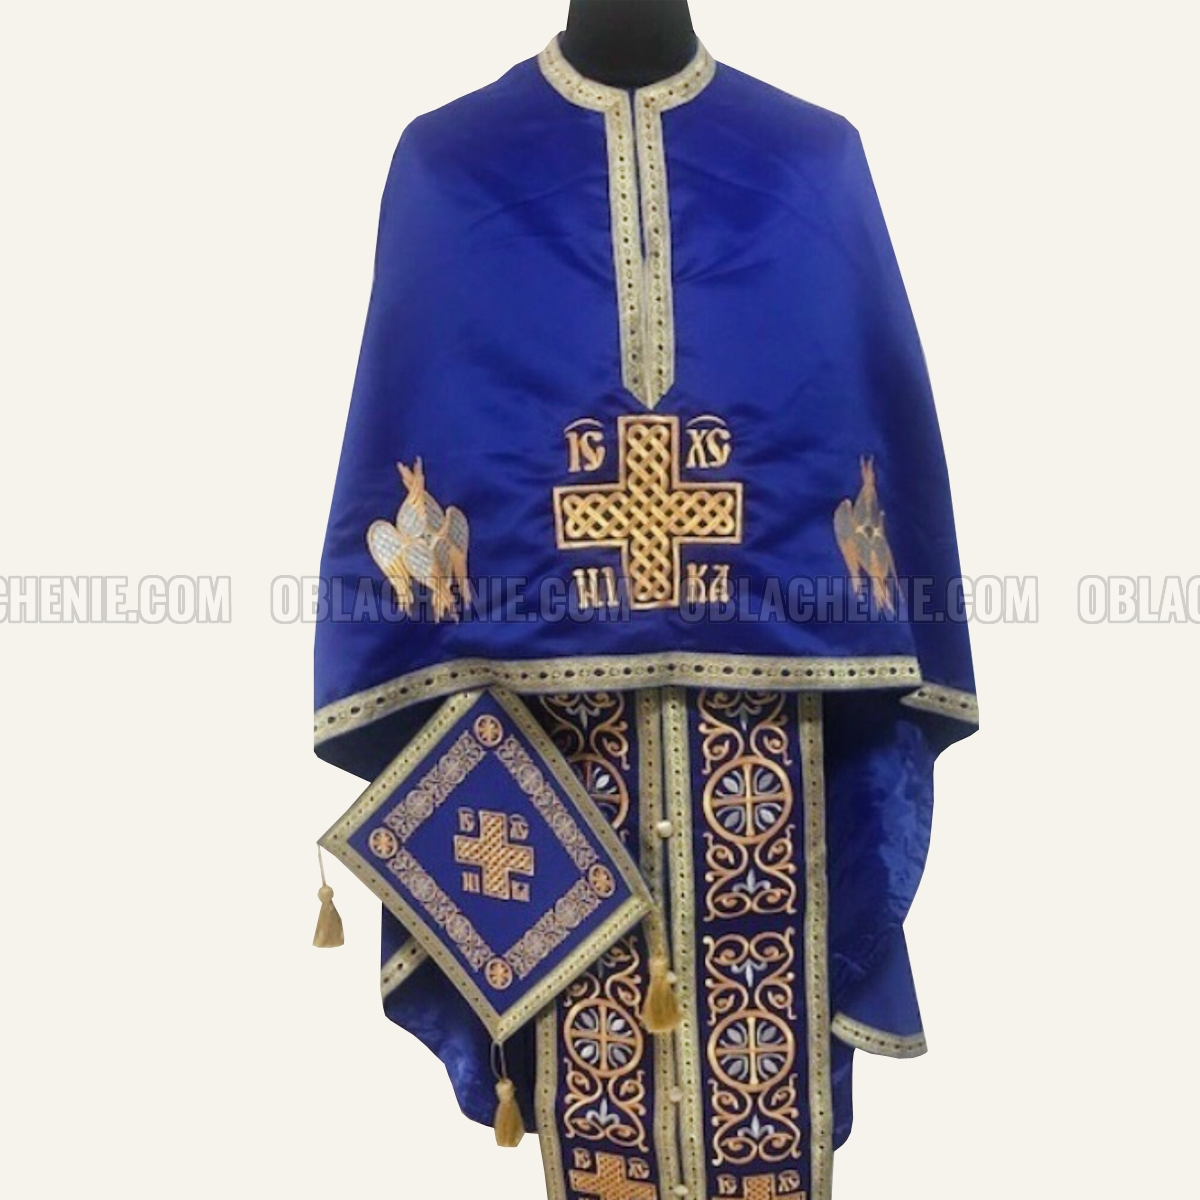 Embroidered priest's vestments 10227